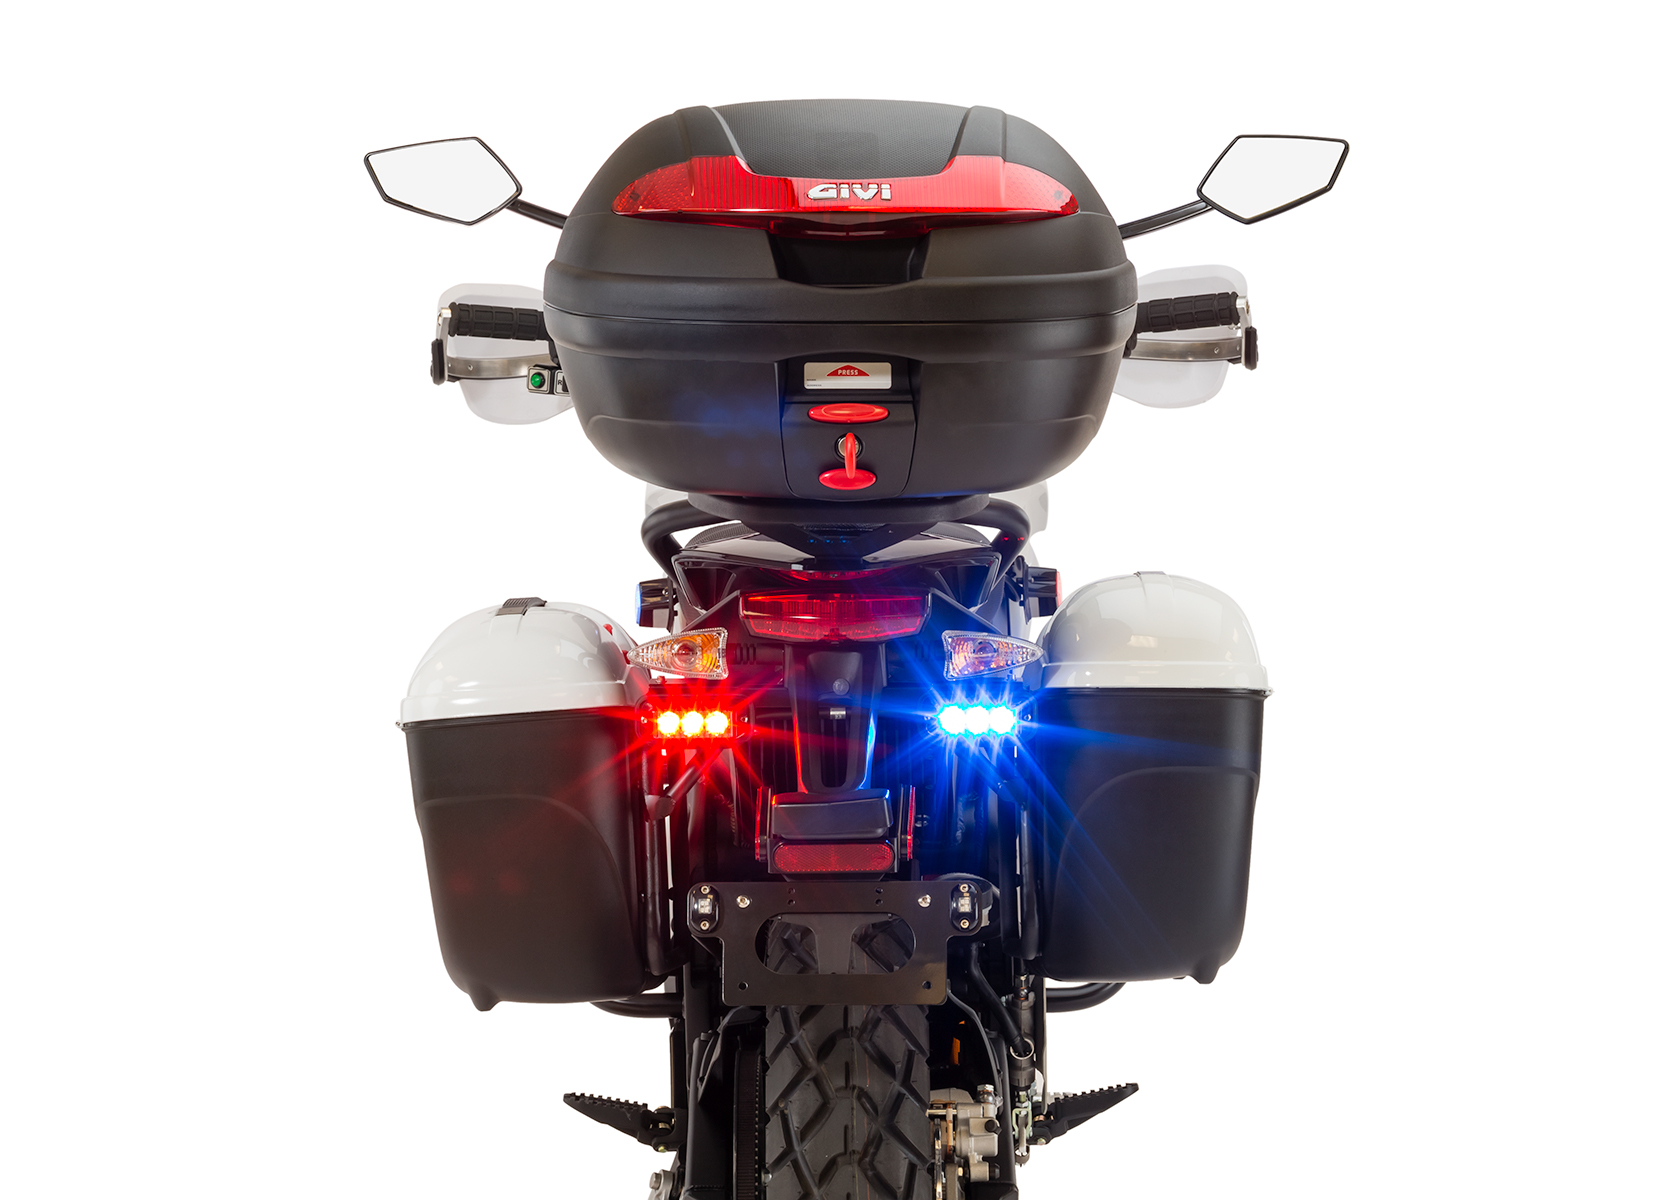 2013 Zero Police Electric Motorcycle: Rear, Lights on